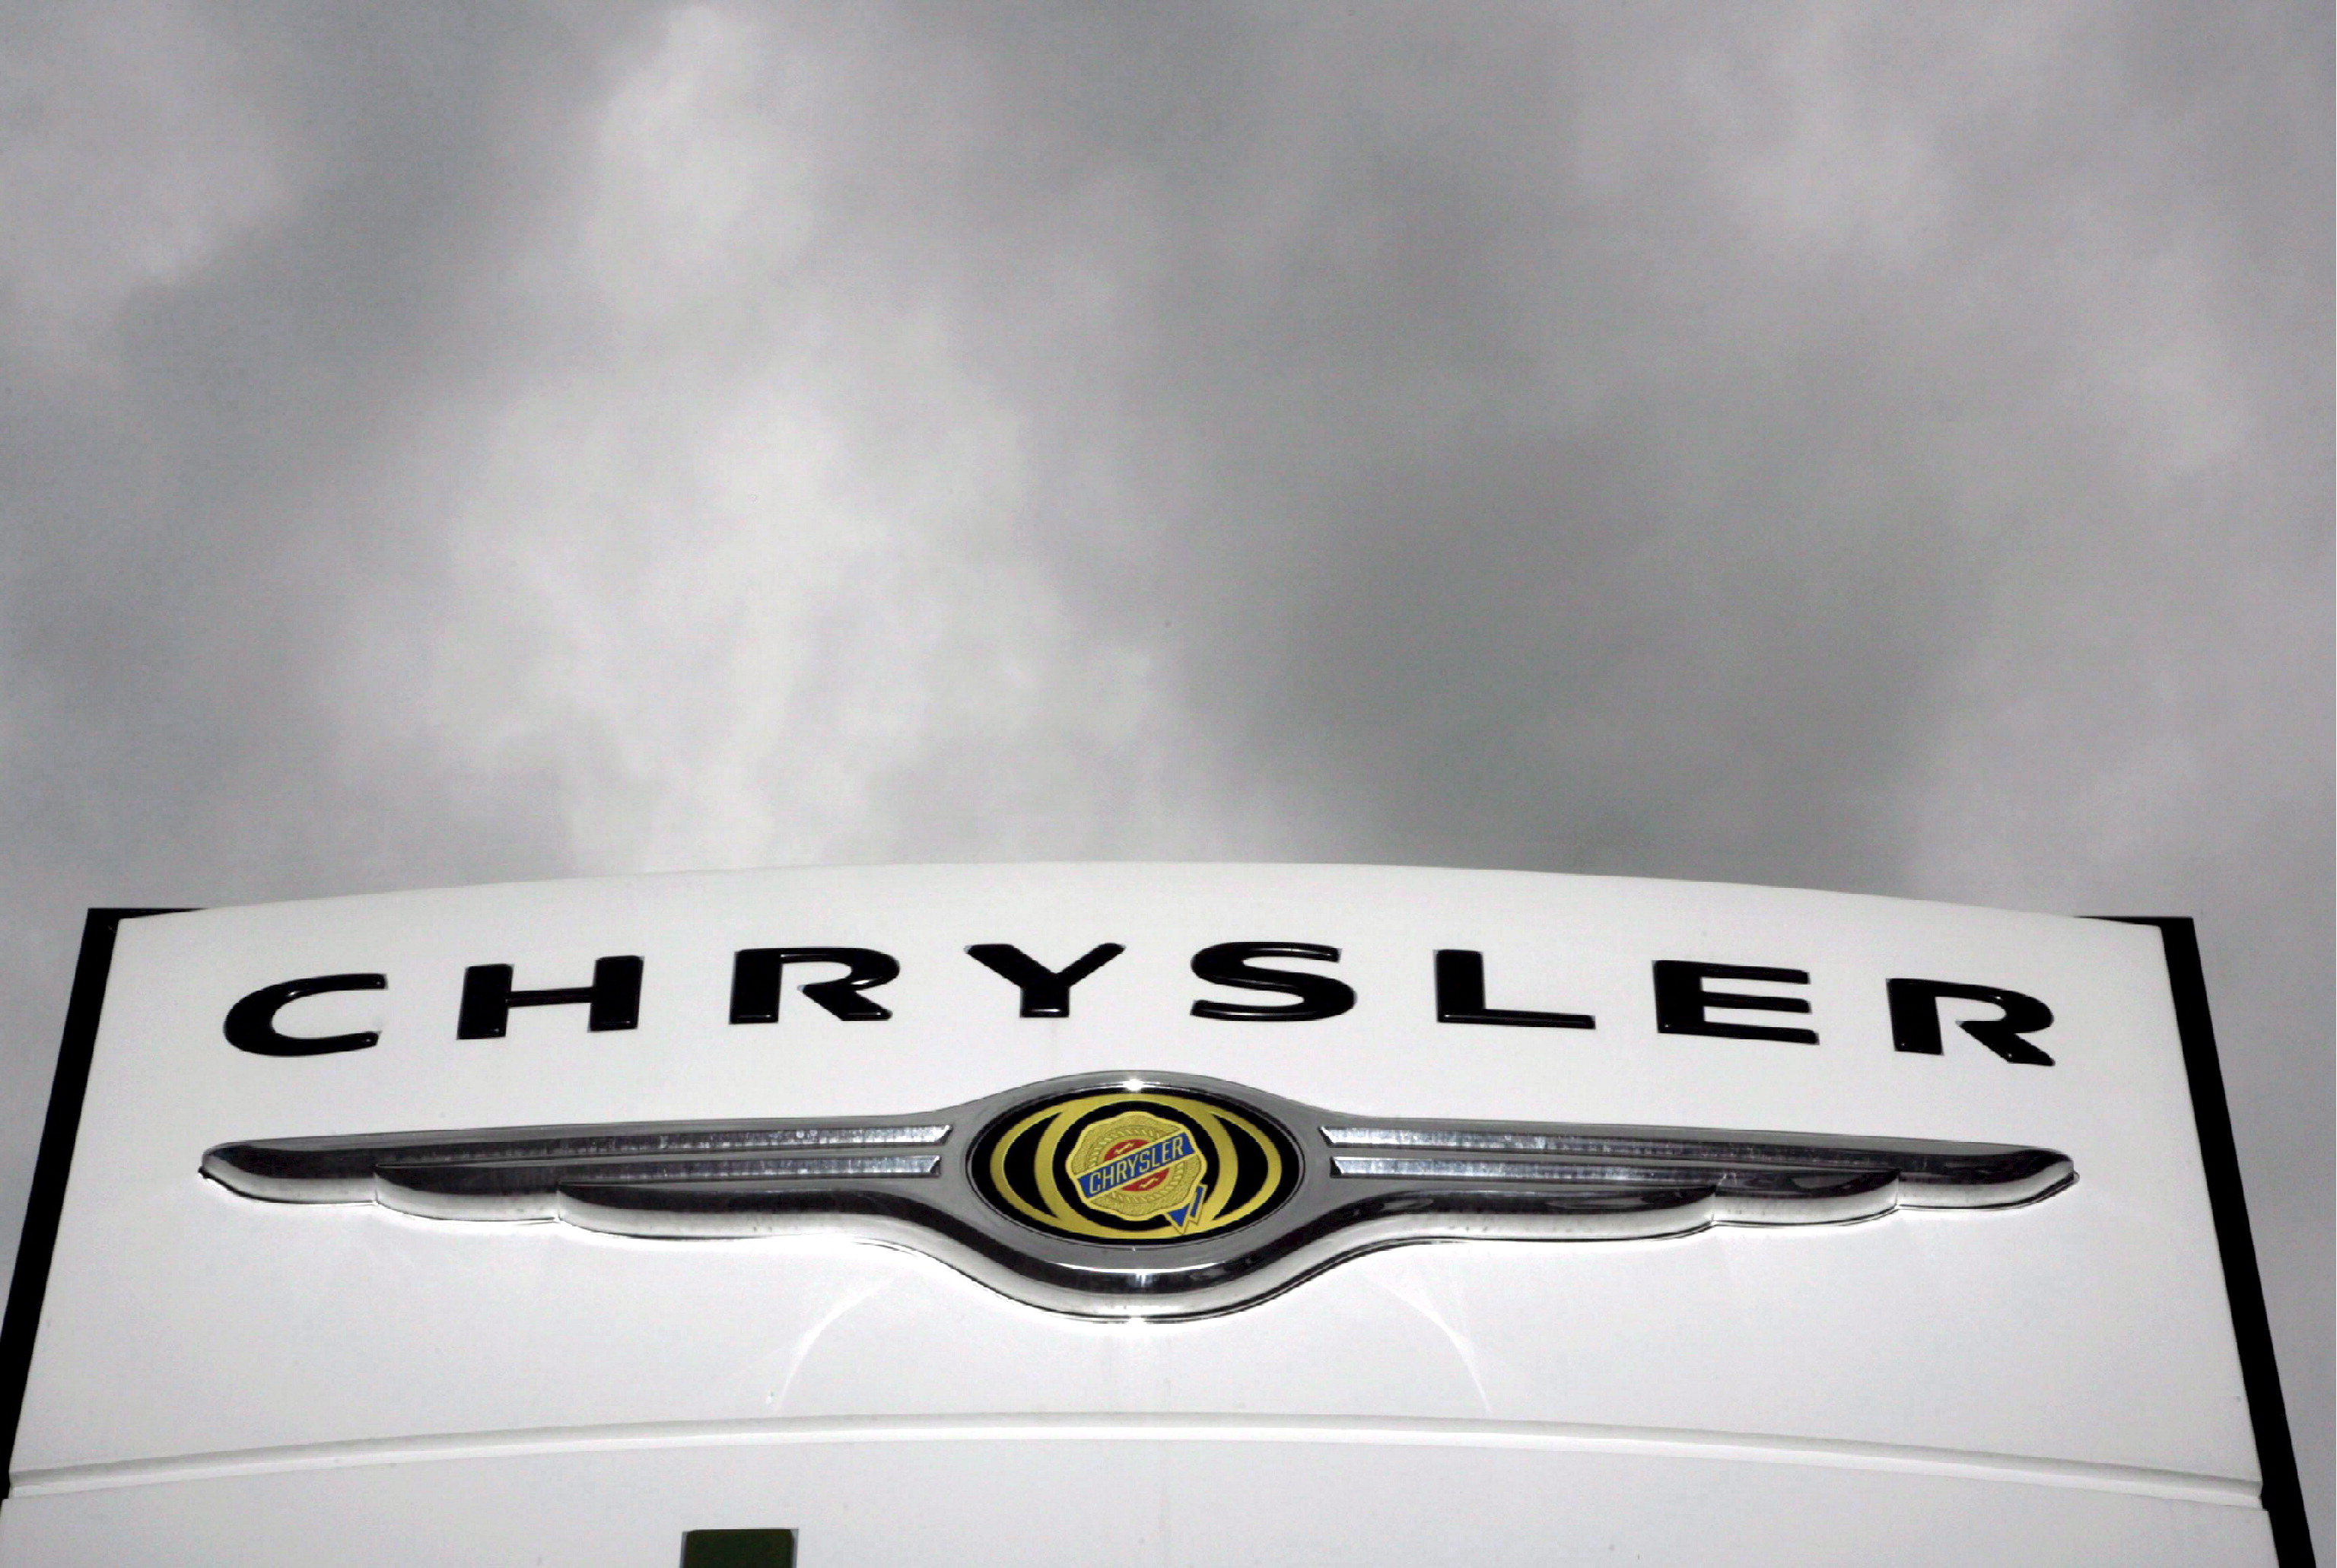 strategic change at chrysler Fiat chrysler laid out a five-year vision for the company that embraces the two biggest shifts in the industry—boosting sales of suvs and trucks while investing in.